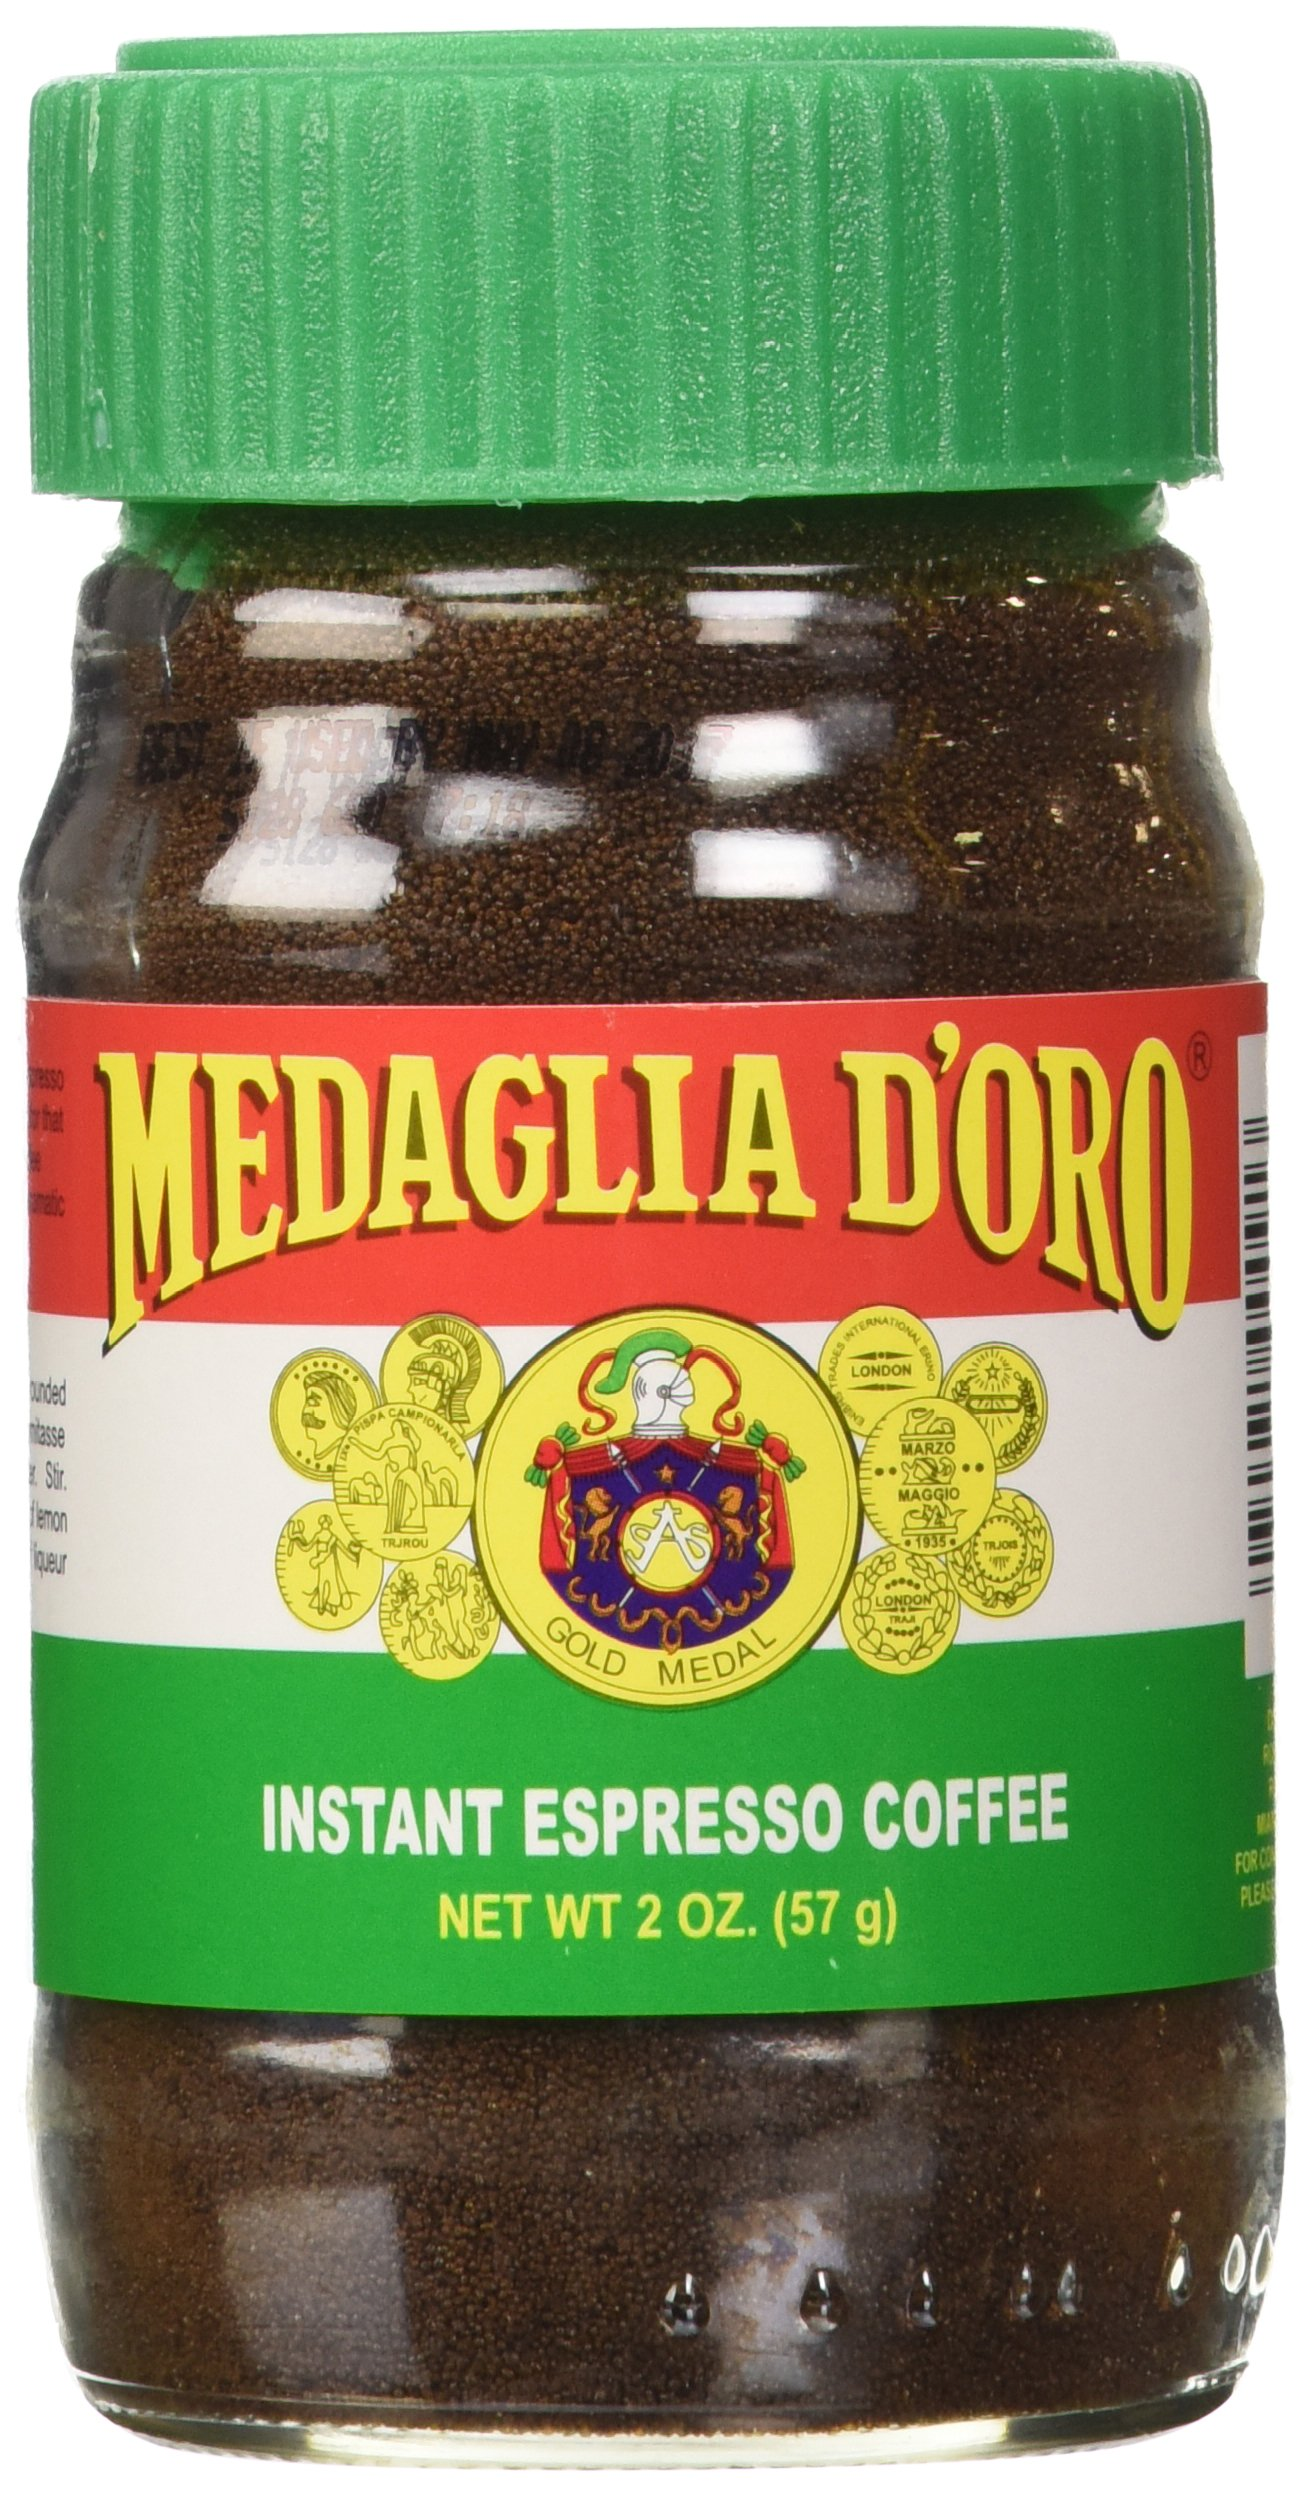 Medaglia D'Oro Instant Espresso Coffee, 2-Ounce Jars (Pack of 6) by MEDAGLIA D'ORO